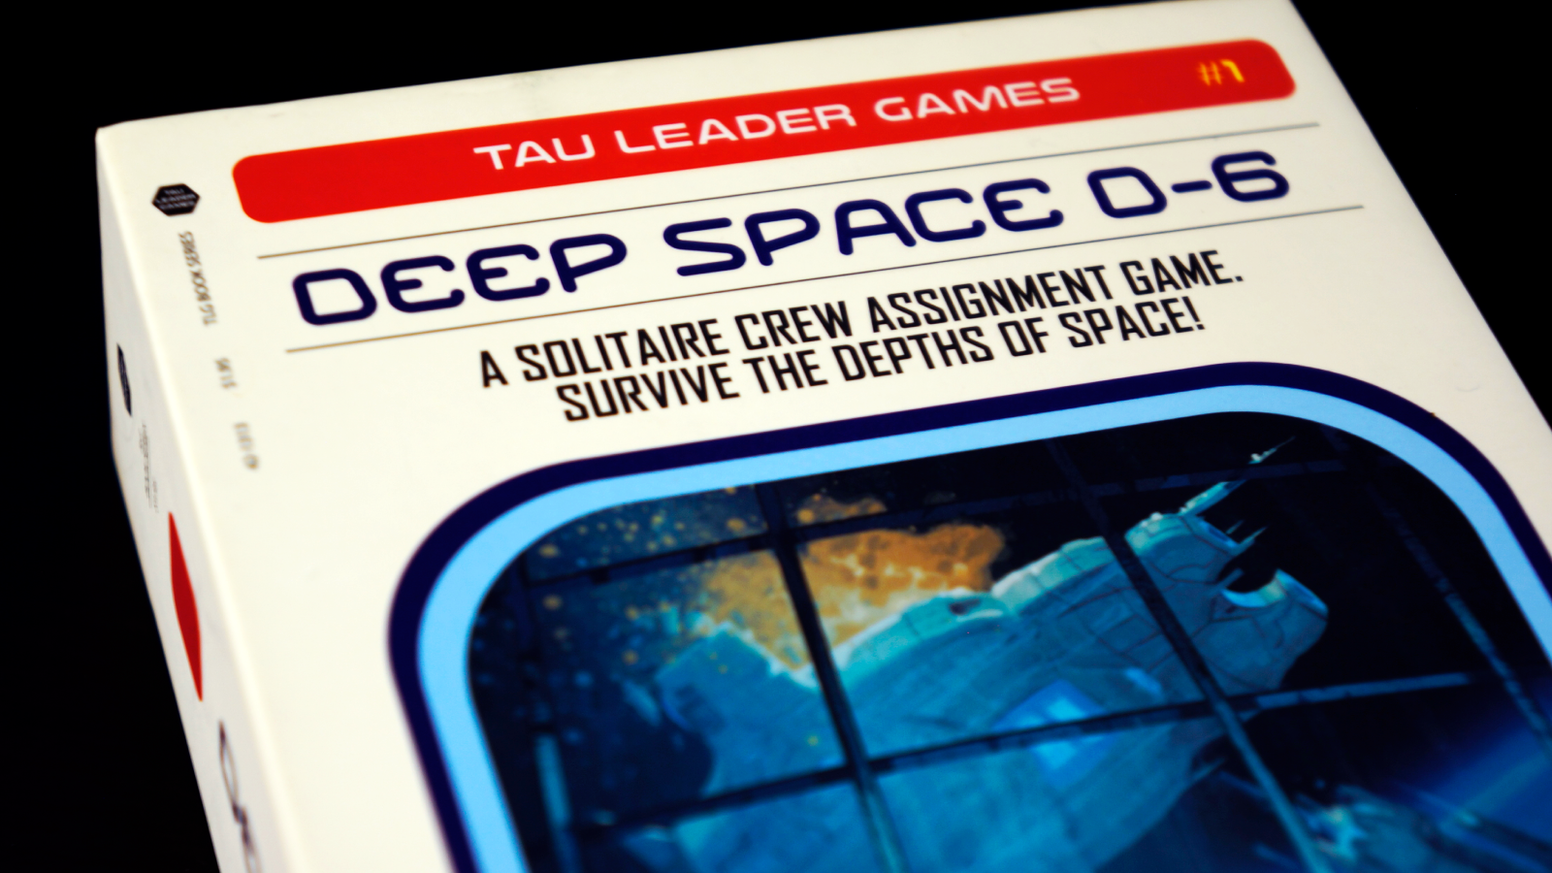 Available now at TauLeaderGames.com!